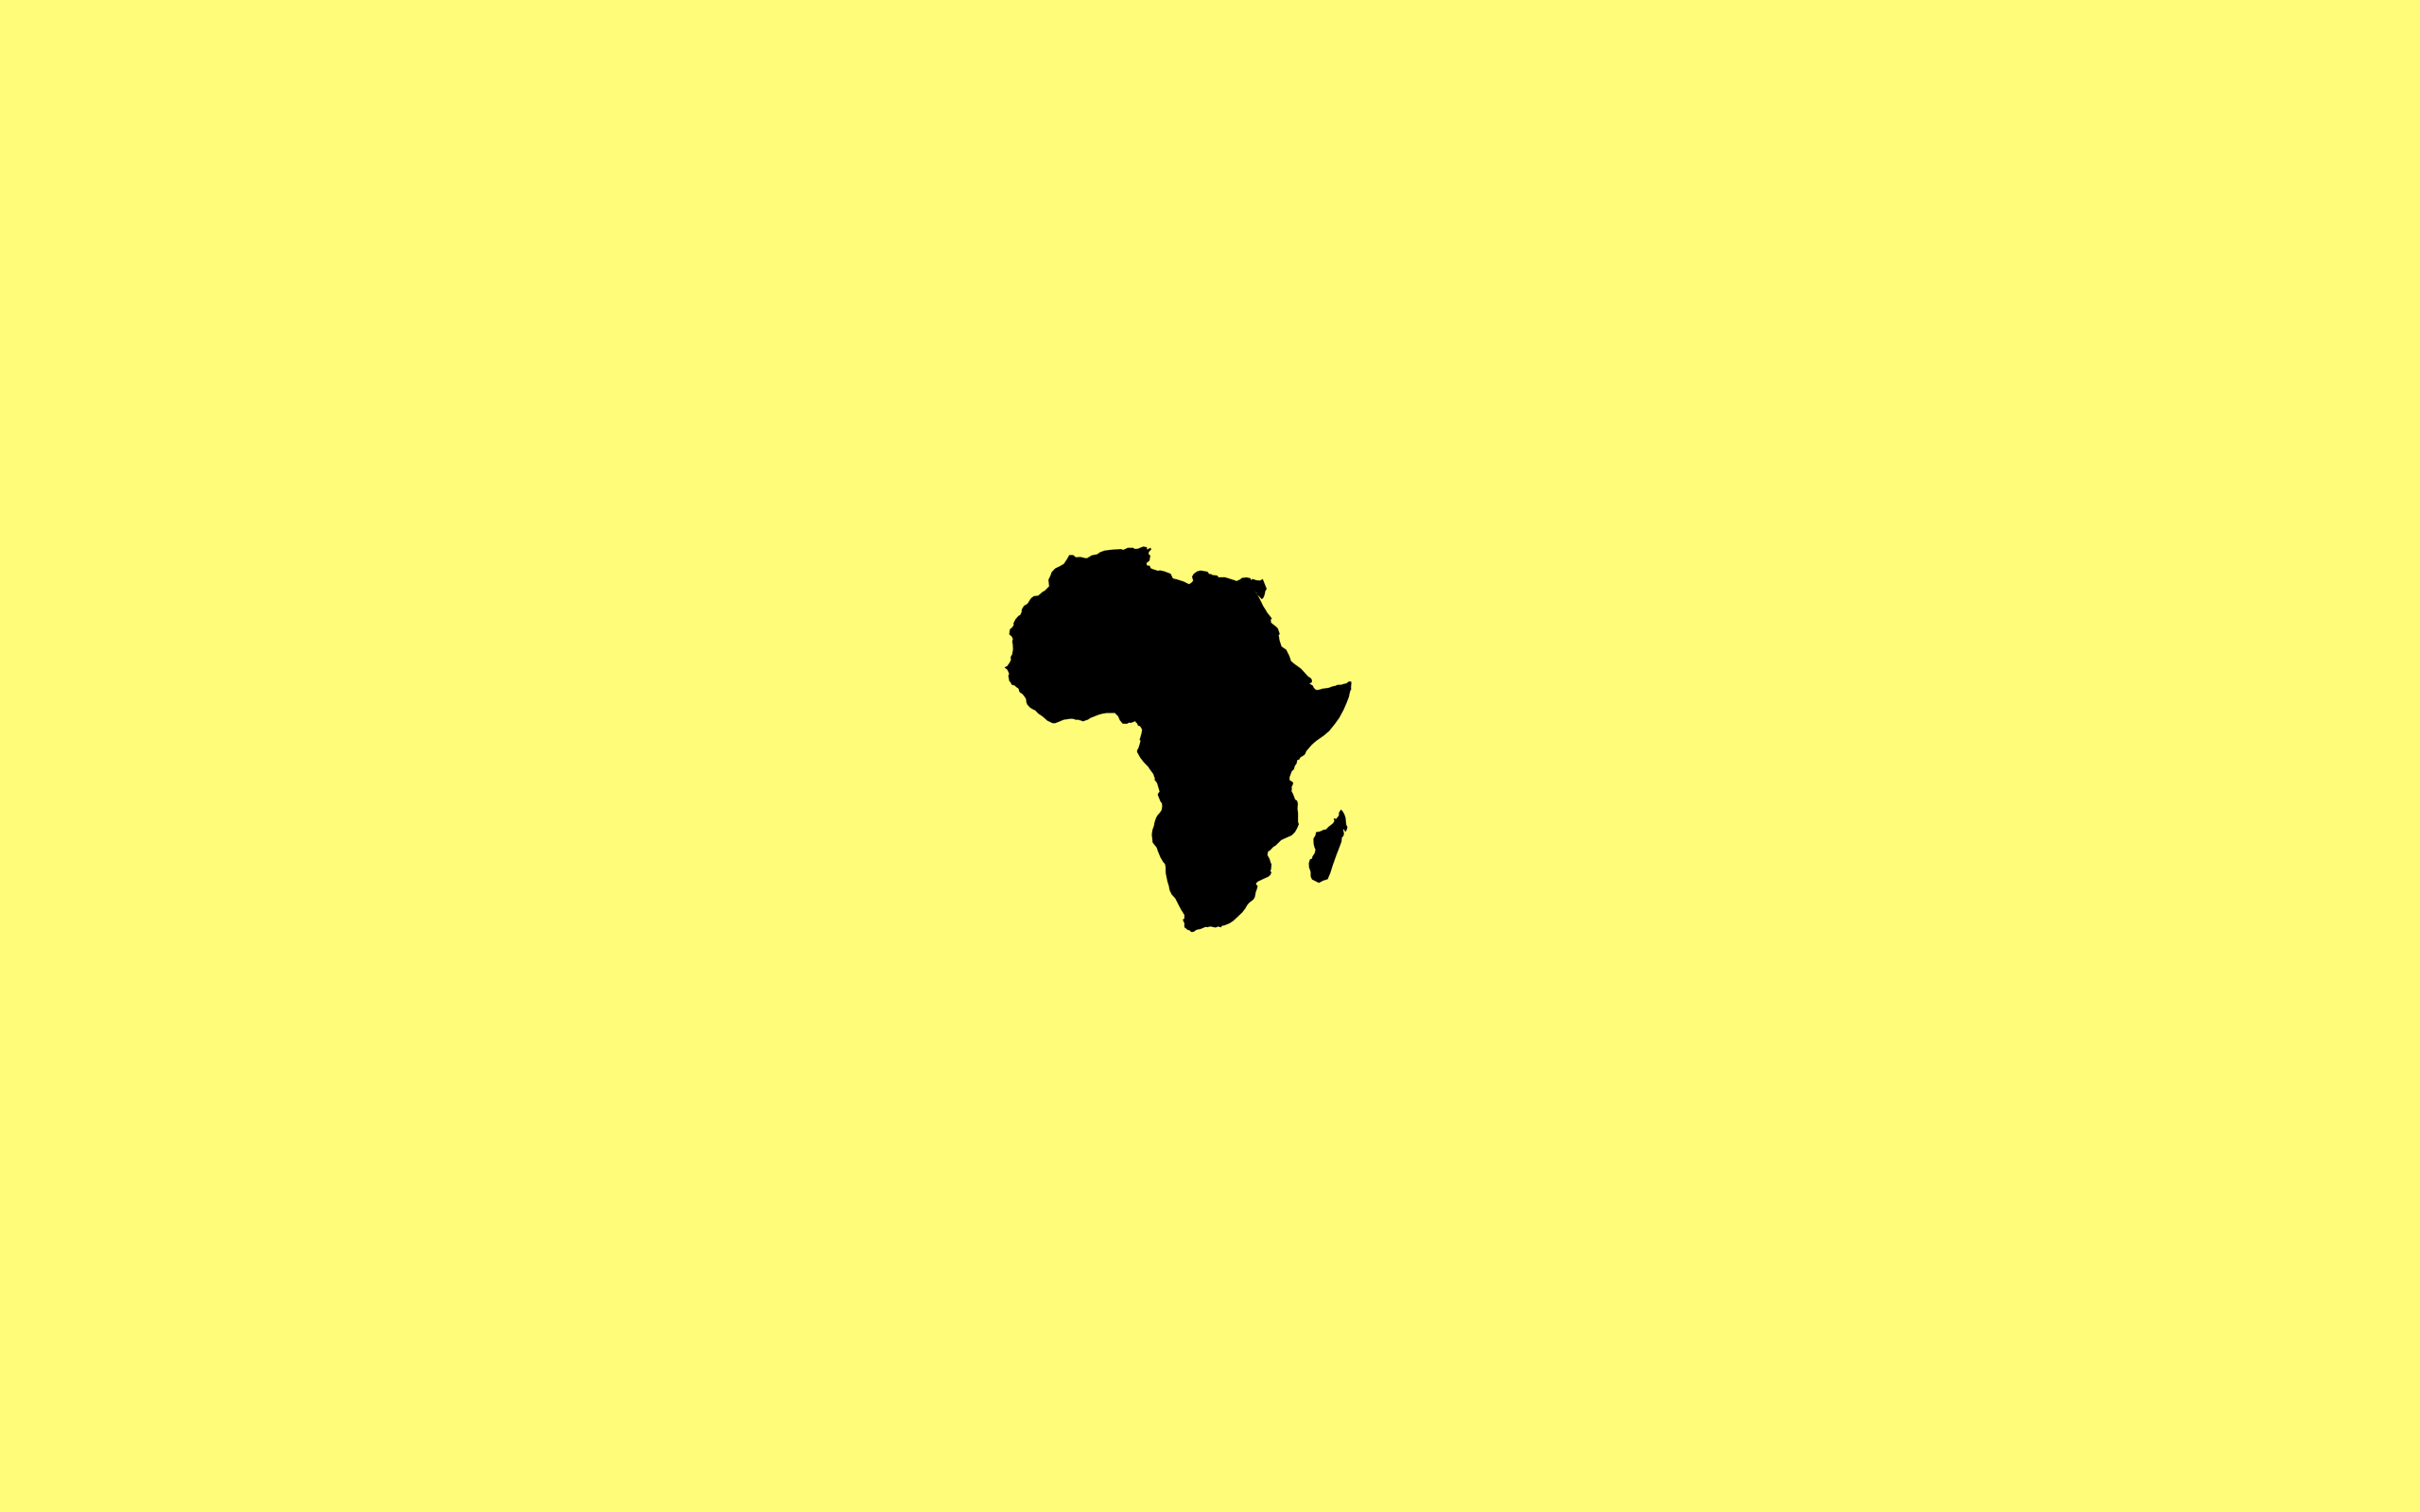 Simple Desktop Wallpaper African Continent I Have Made A Bunch Of Wallpapers